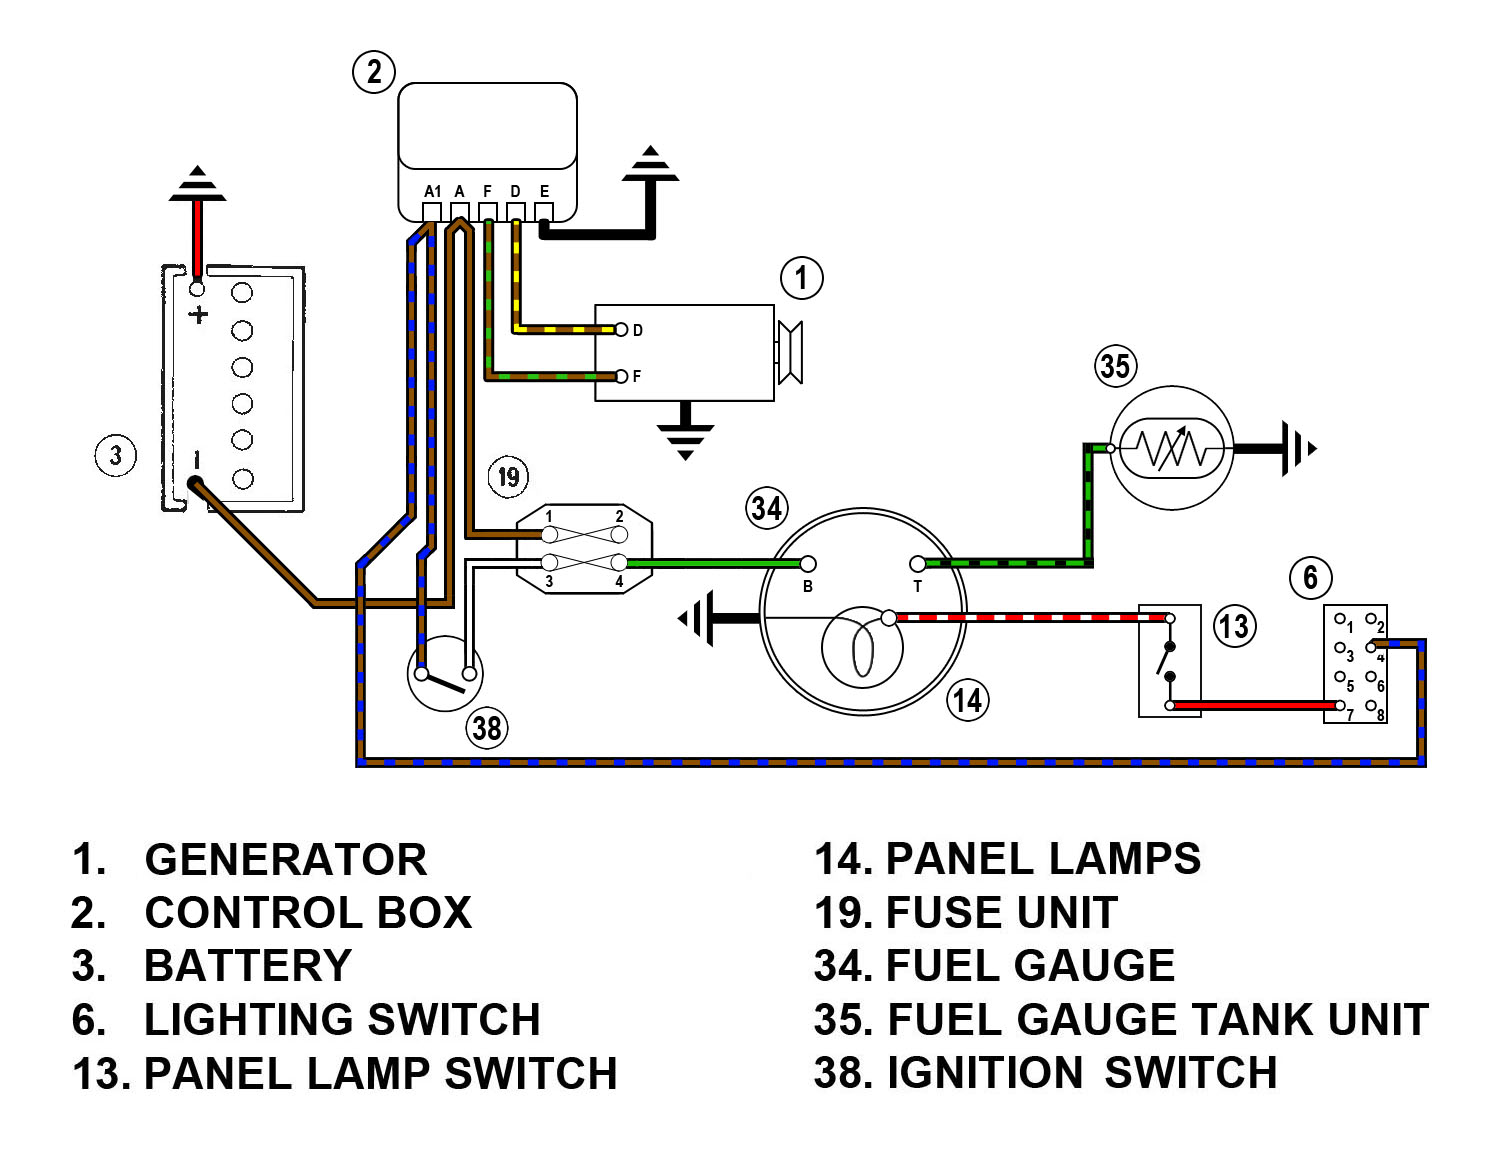 hight resolution of fuel gauge wire diagram